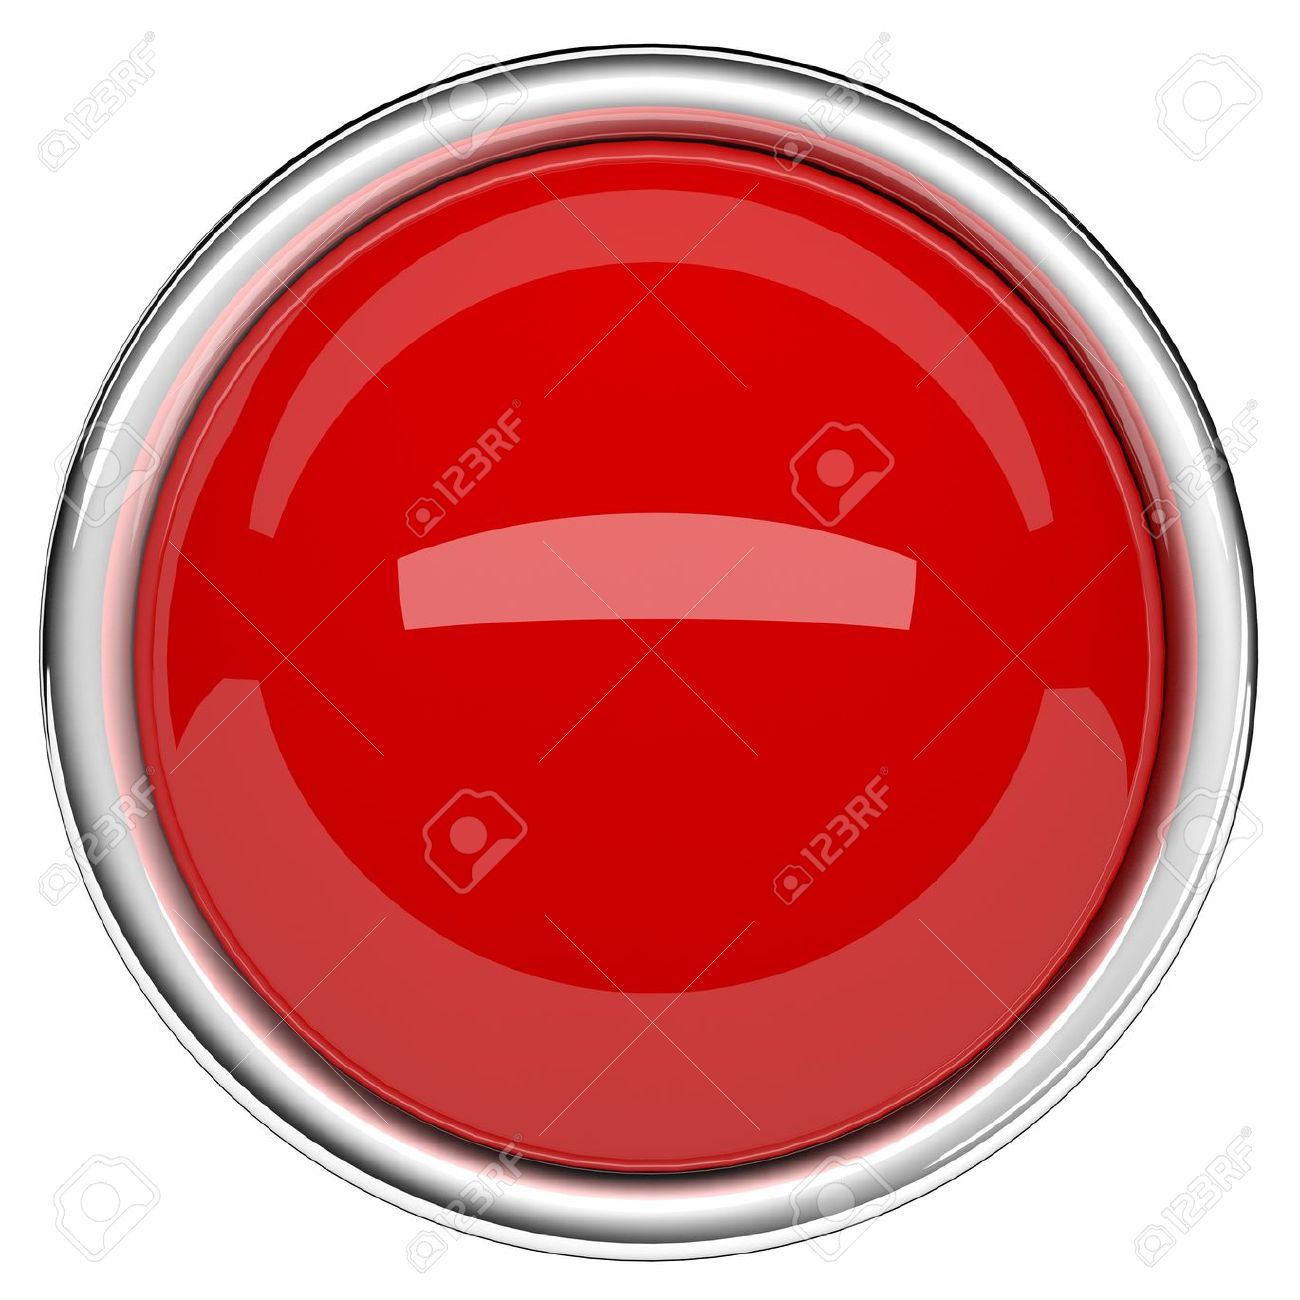 Red sphere and ring. Red button Stock Photo - 20119589